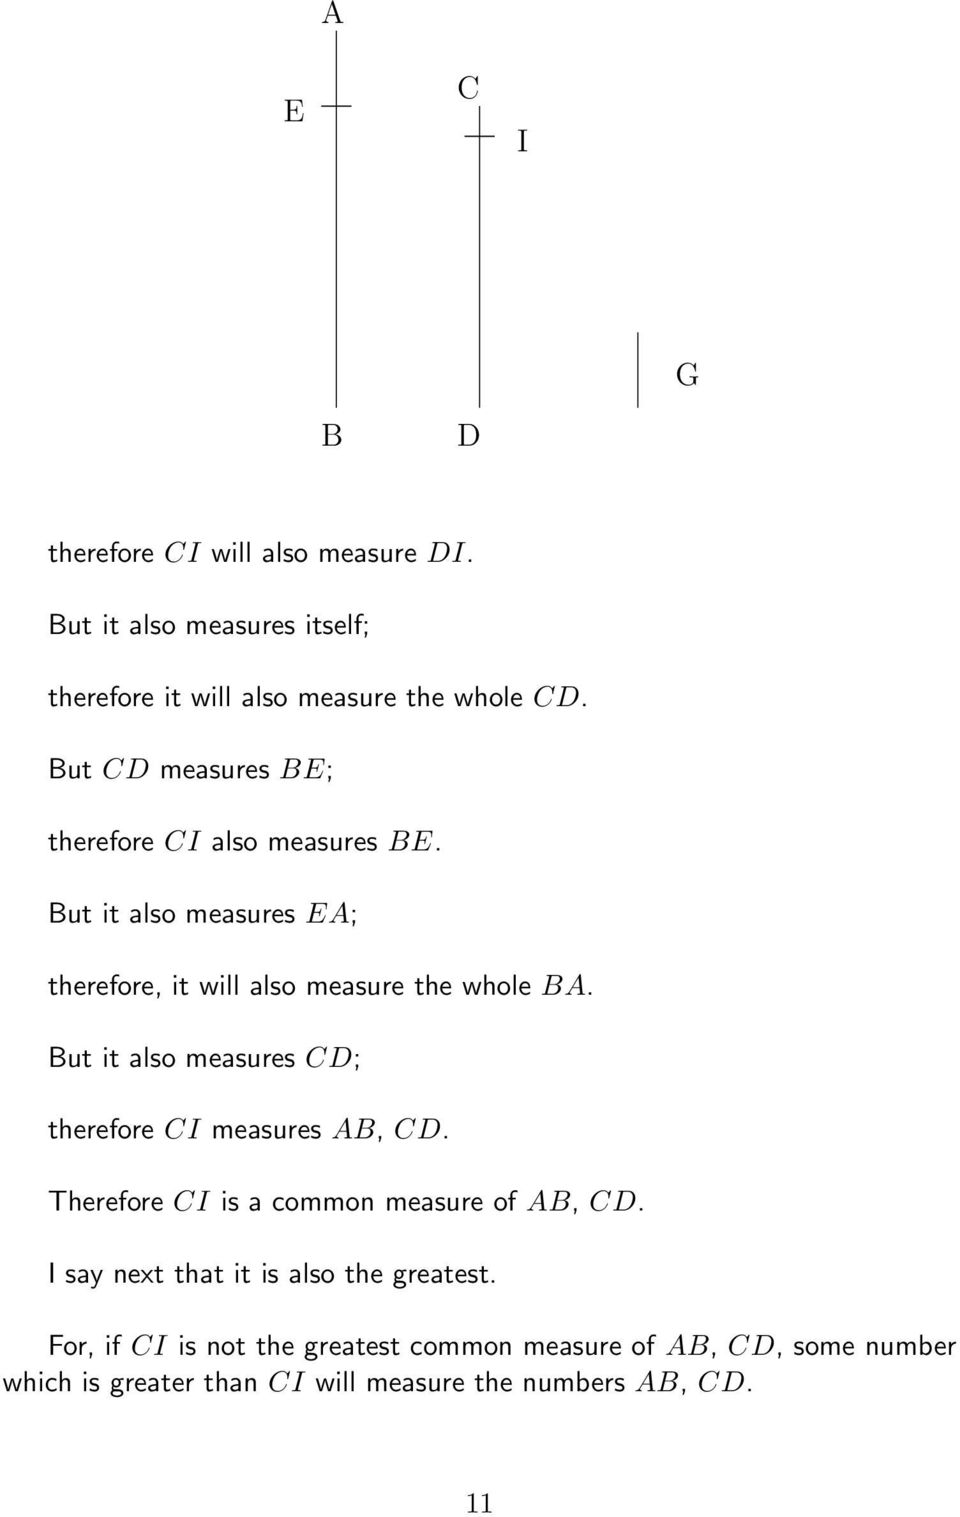 But it also measures CD; therefore CI measures AB, CD. Therefore CI is a common measure of AB, CD.